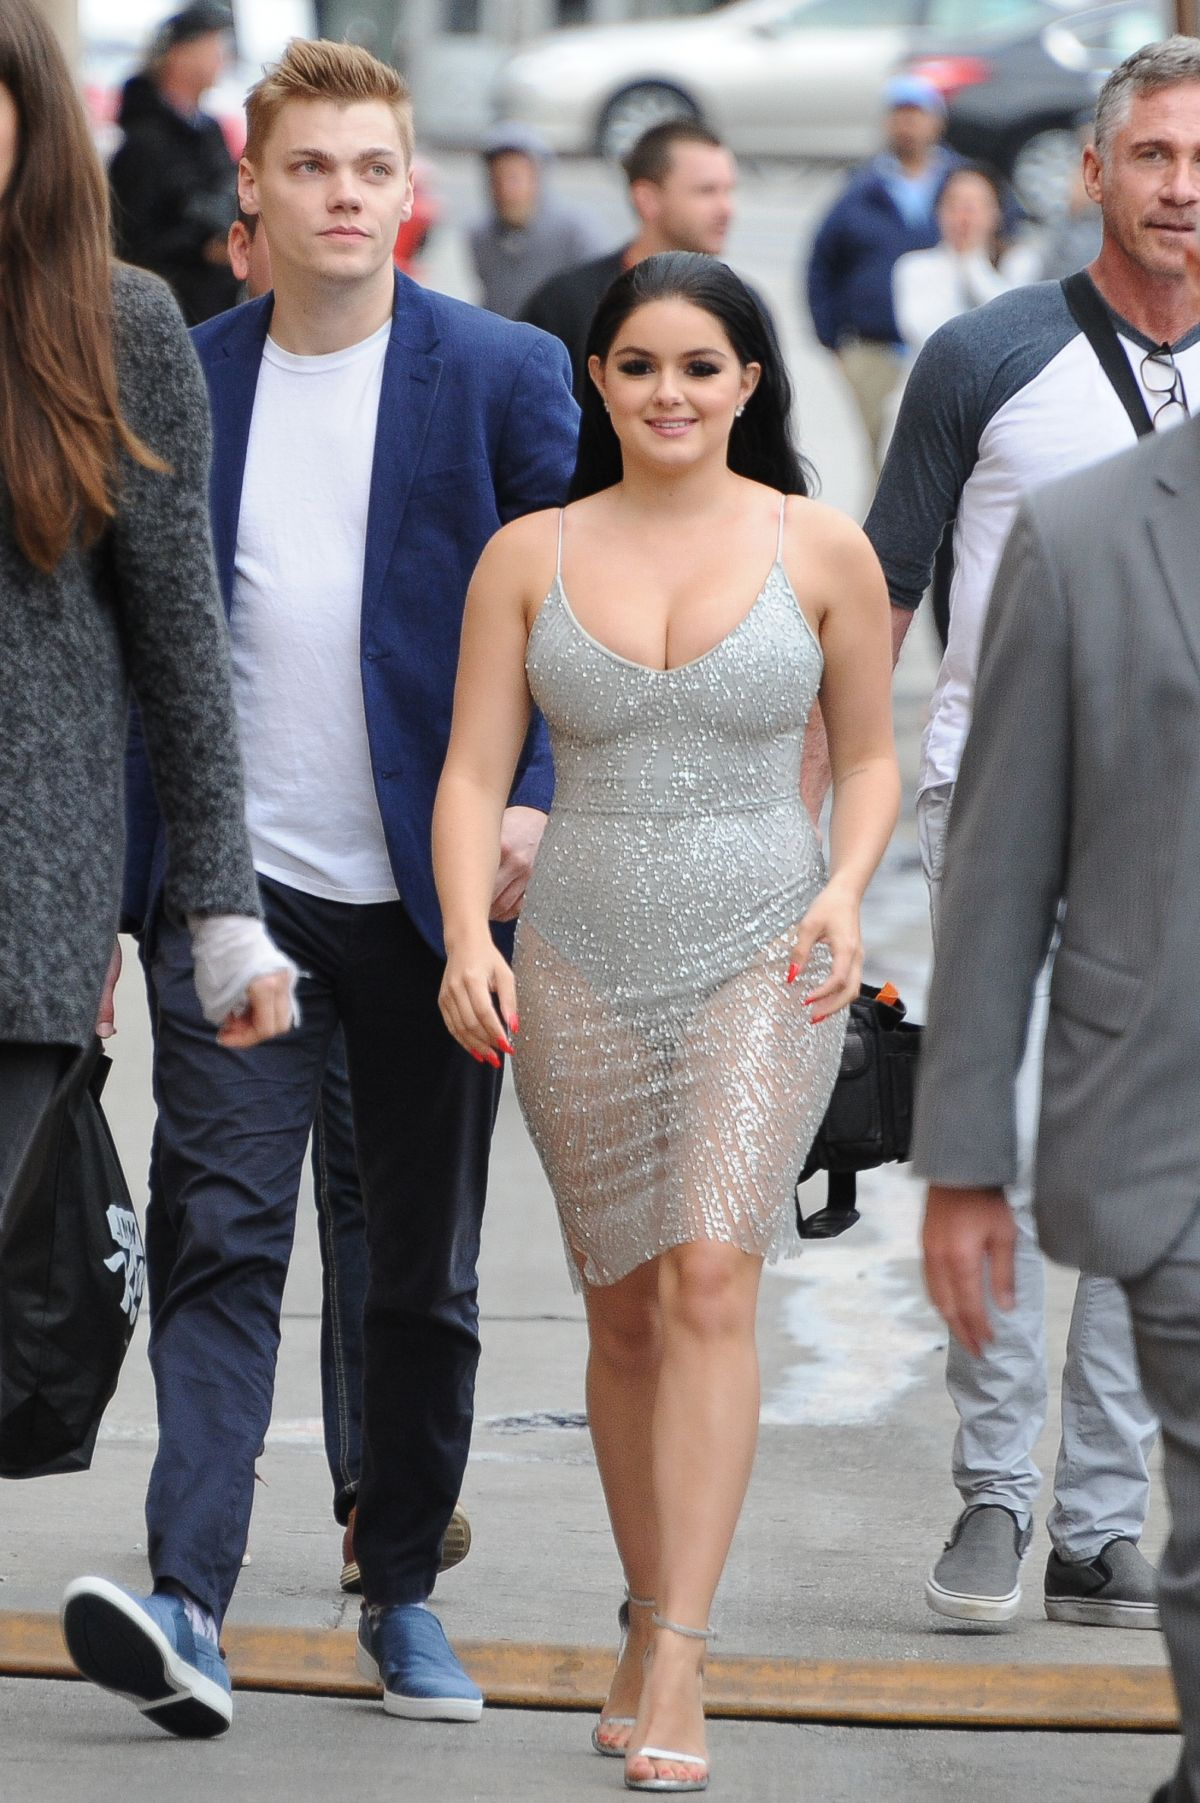 Ariel winter arriving to appear on jimmy kimmel show in los angeles